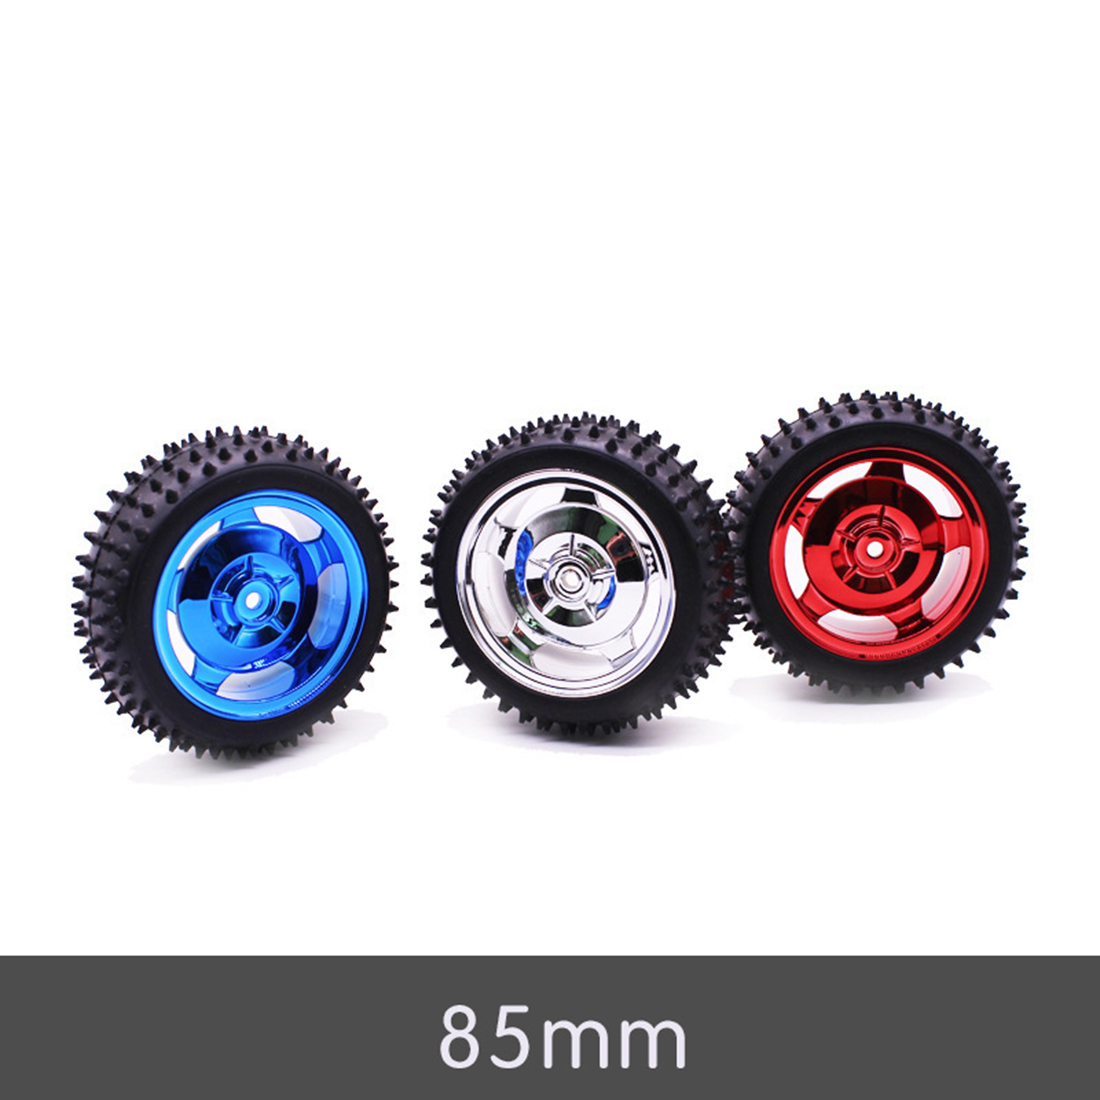 MODIKER High Tech 85mm Off-road Tyre DIY Intelligent Robot Car Wheel Programming Toy Car Tire With Liner  - Electroplating Red